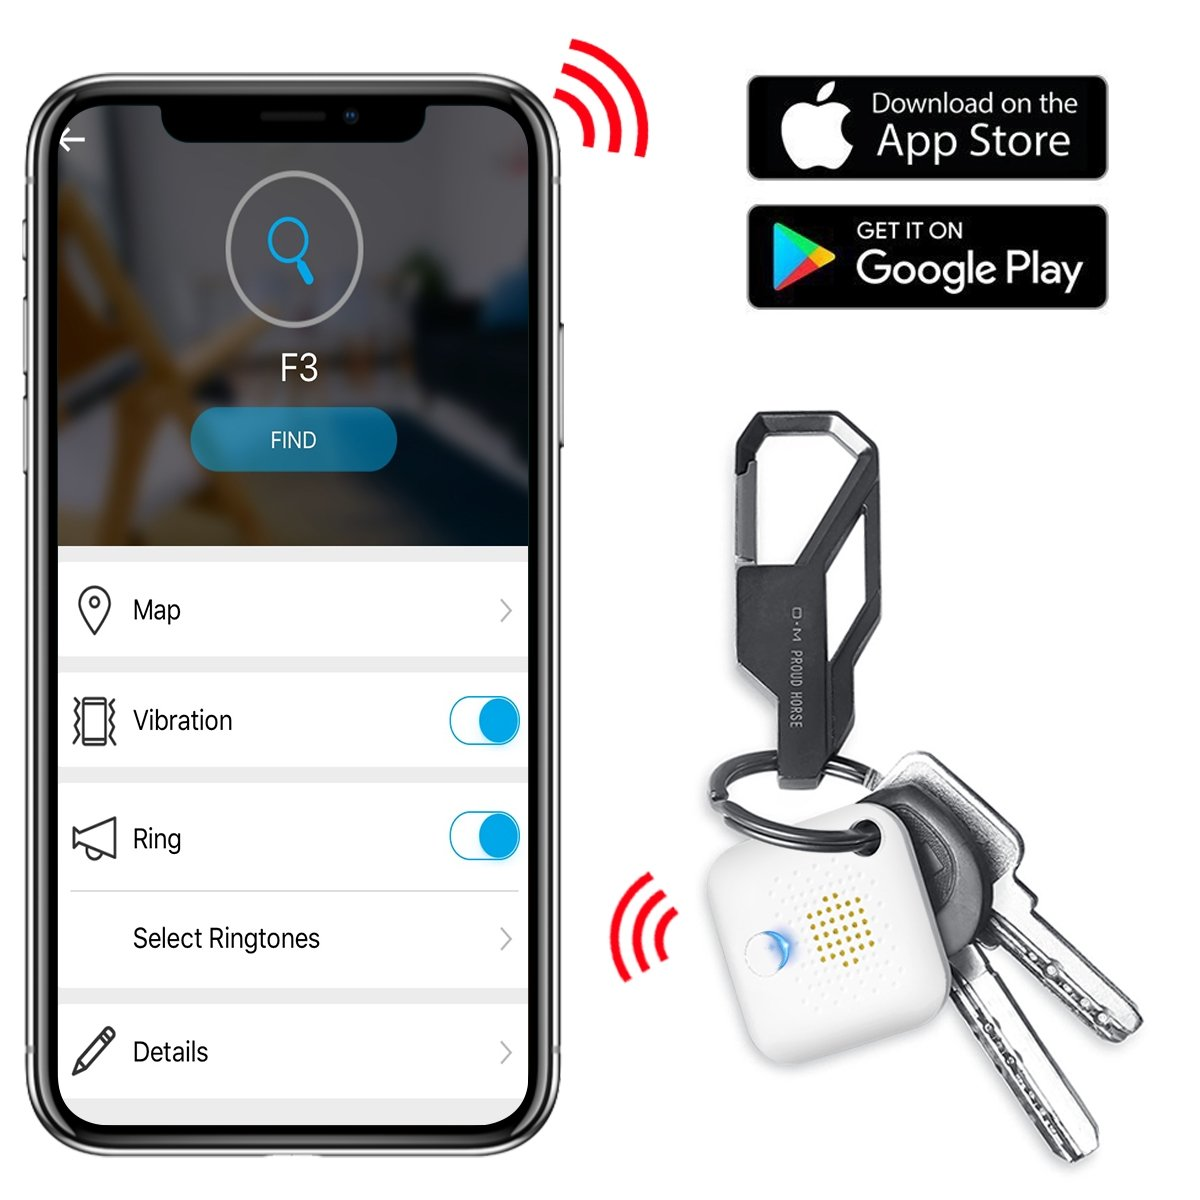 EALNK Key Finder Wallet Phone Locator Lost Item Tracker Compatible with Bluetooth for iOS/iPhone/Android (BT Key Finder) (F3)